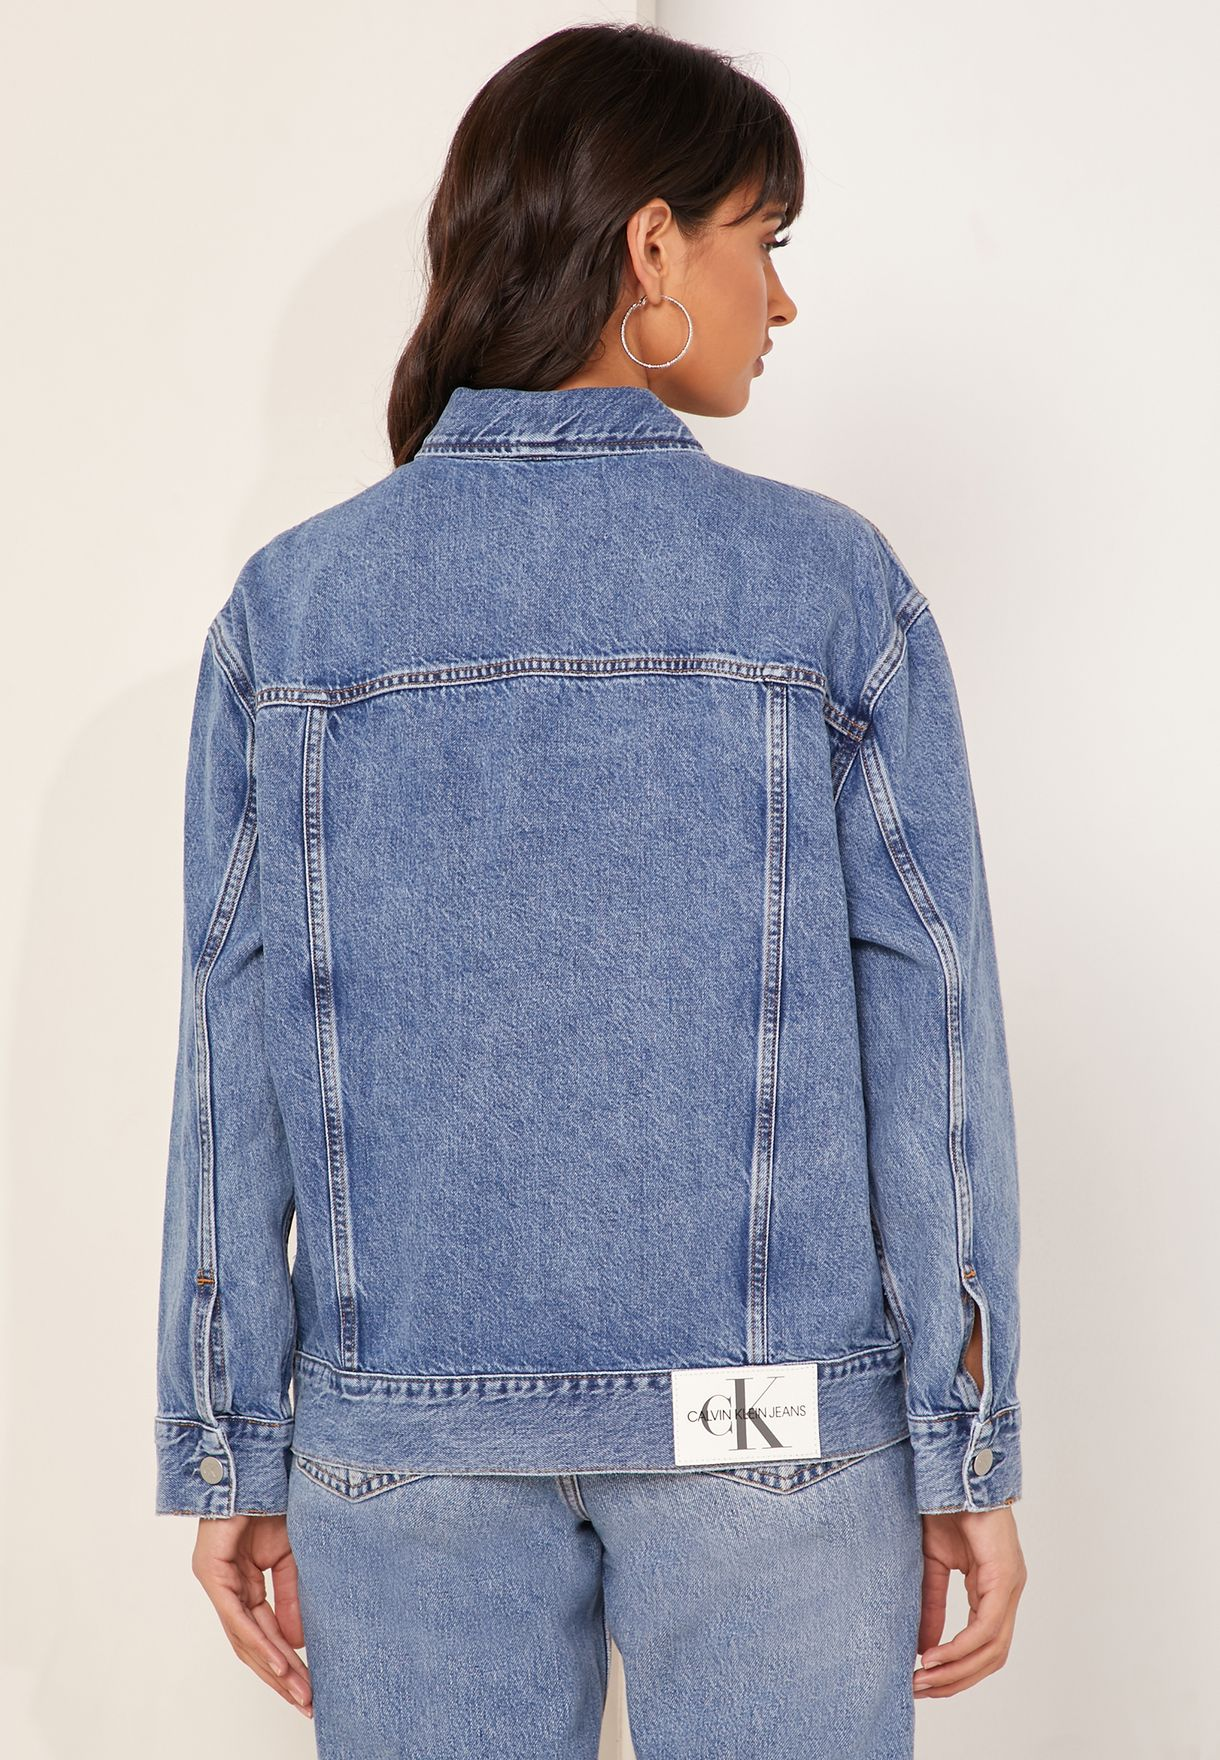 Oversized Iconic Denim Jacket